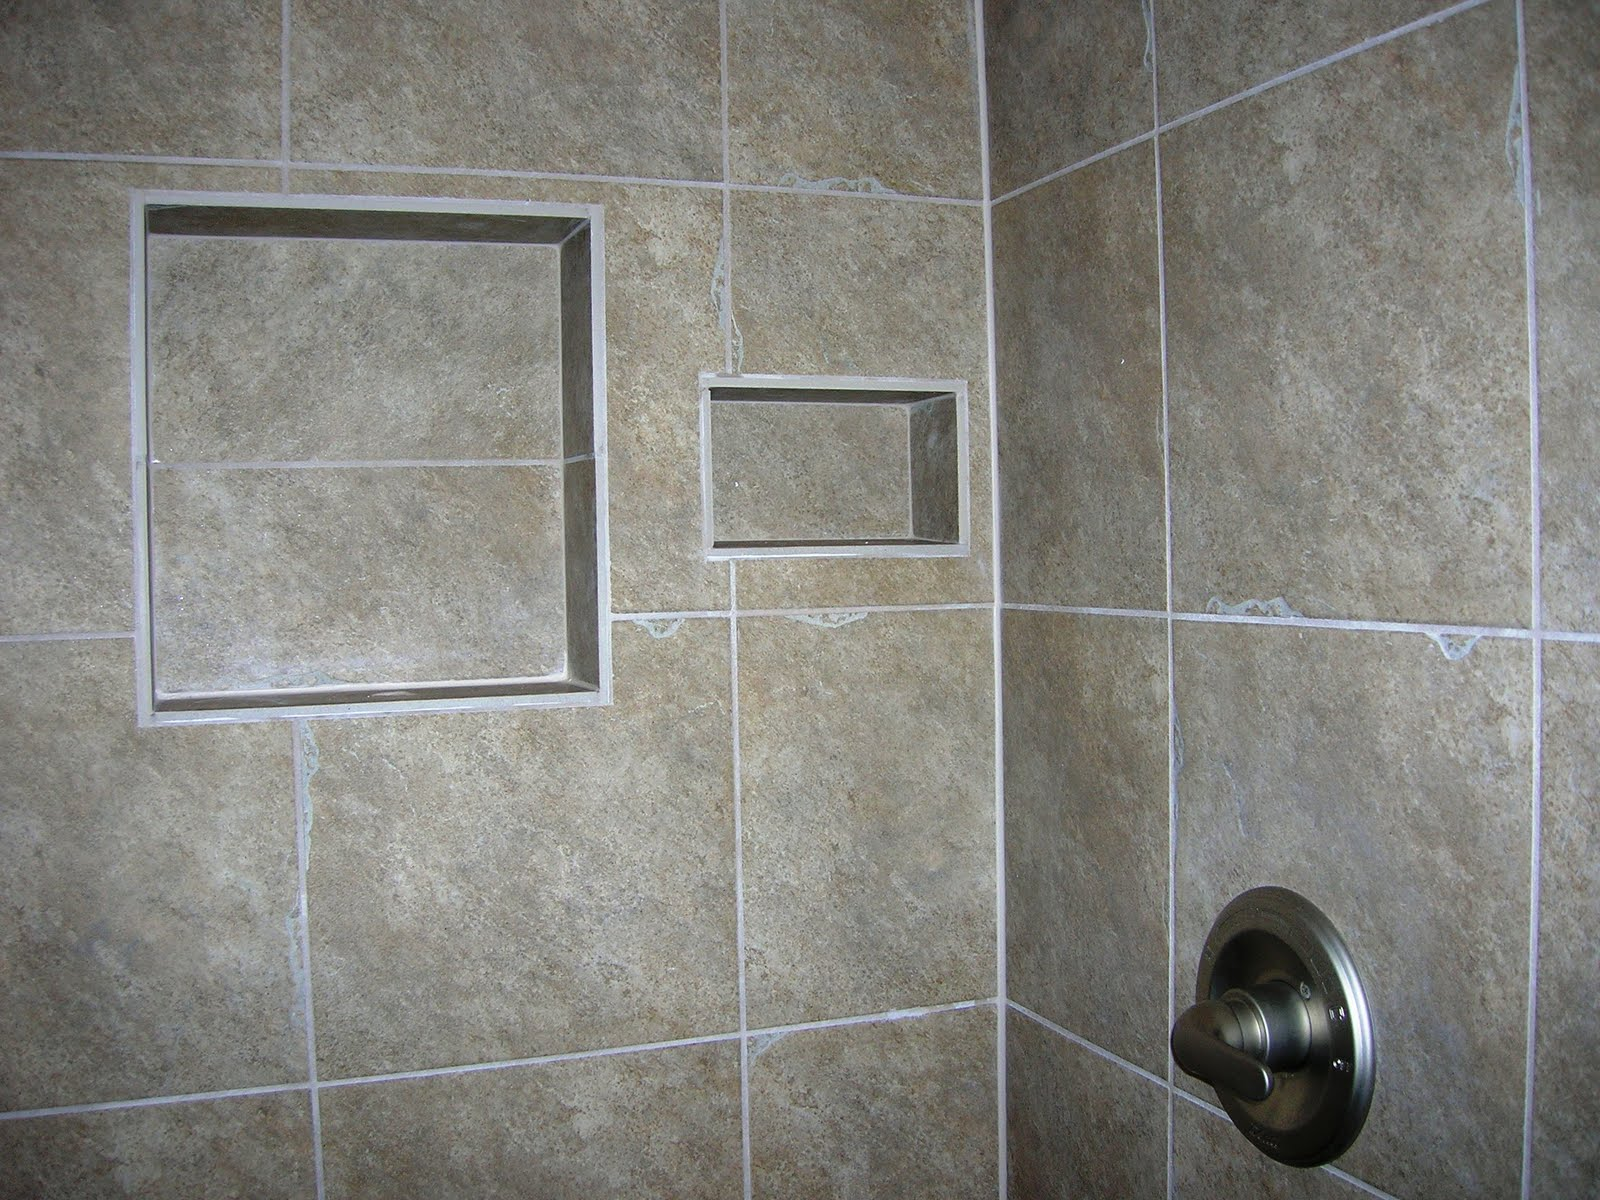 30 nice pictures and ideas of modern bathroom wall tile design pictures - How to install ceramic tile on wall ...